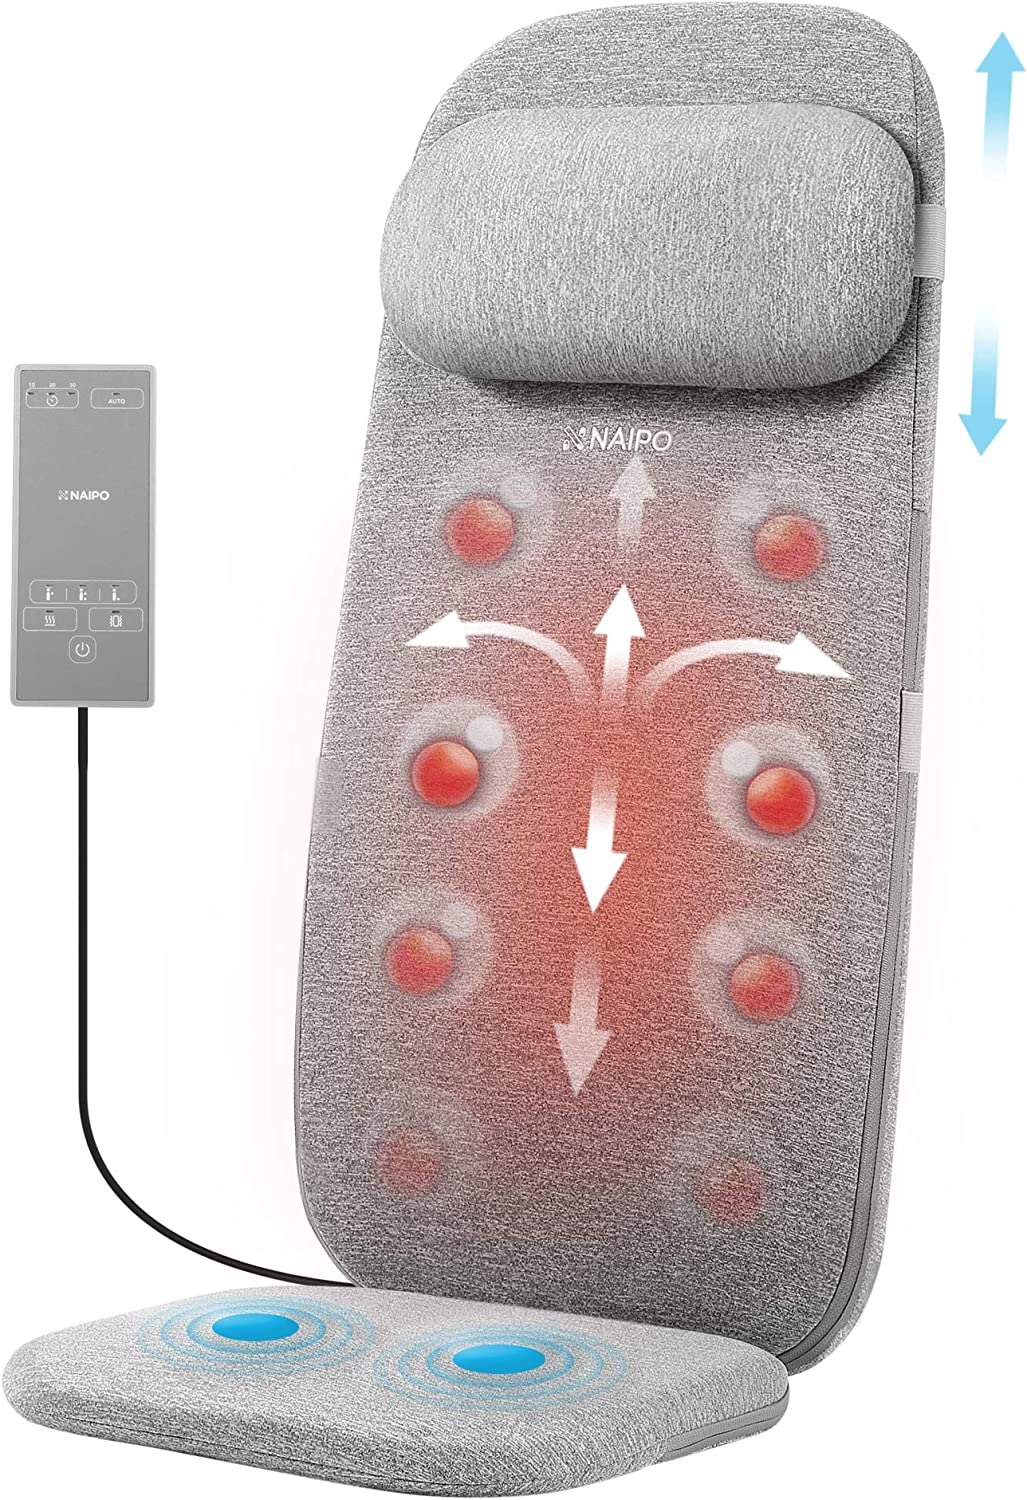 Naipo Shiatsu Massage Cushion with Heat and Vibration, Massage Chair Pad to Relax Full Back, Shoulders, Lumbar and Thighs, Stable and Portable Back Massager Mat for Home, Office Use, Grey